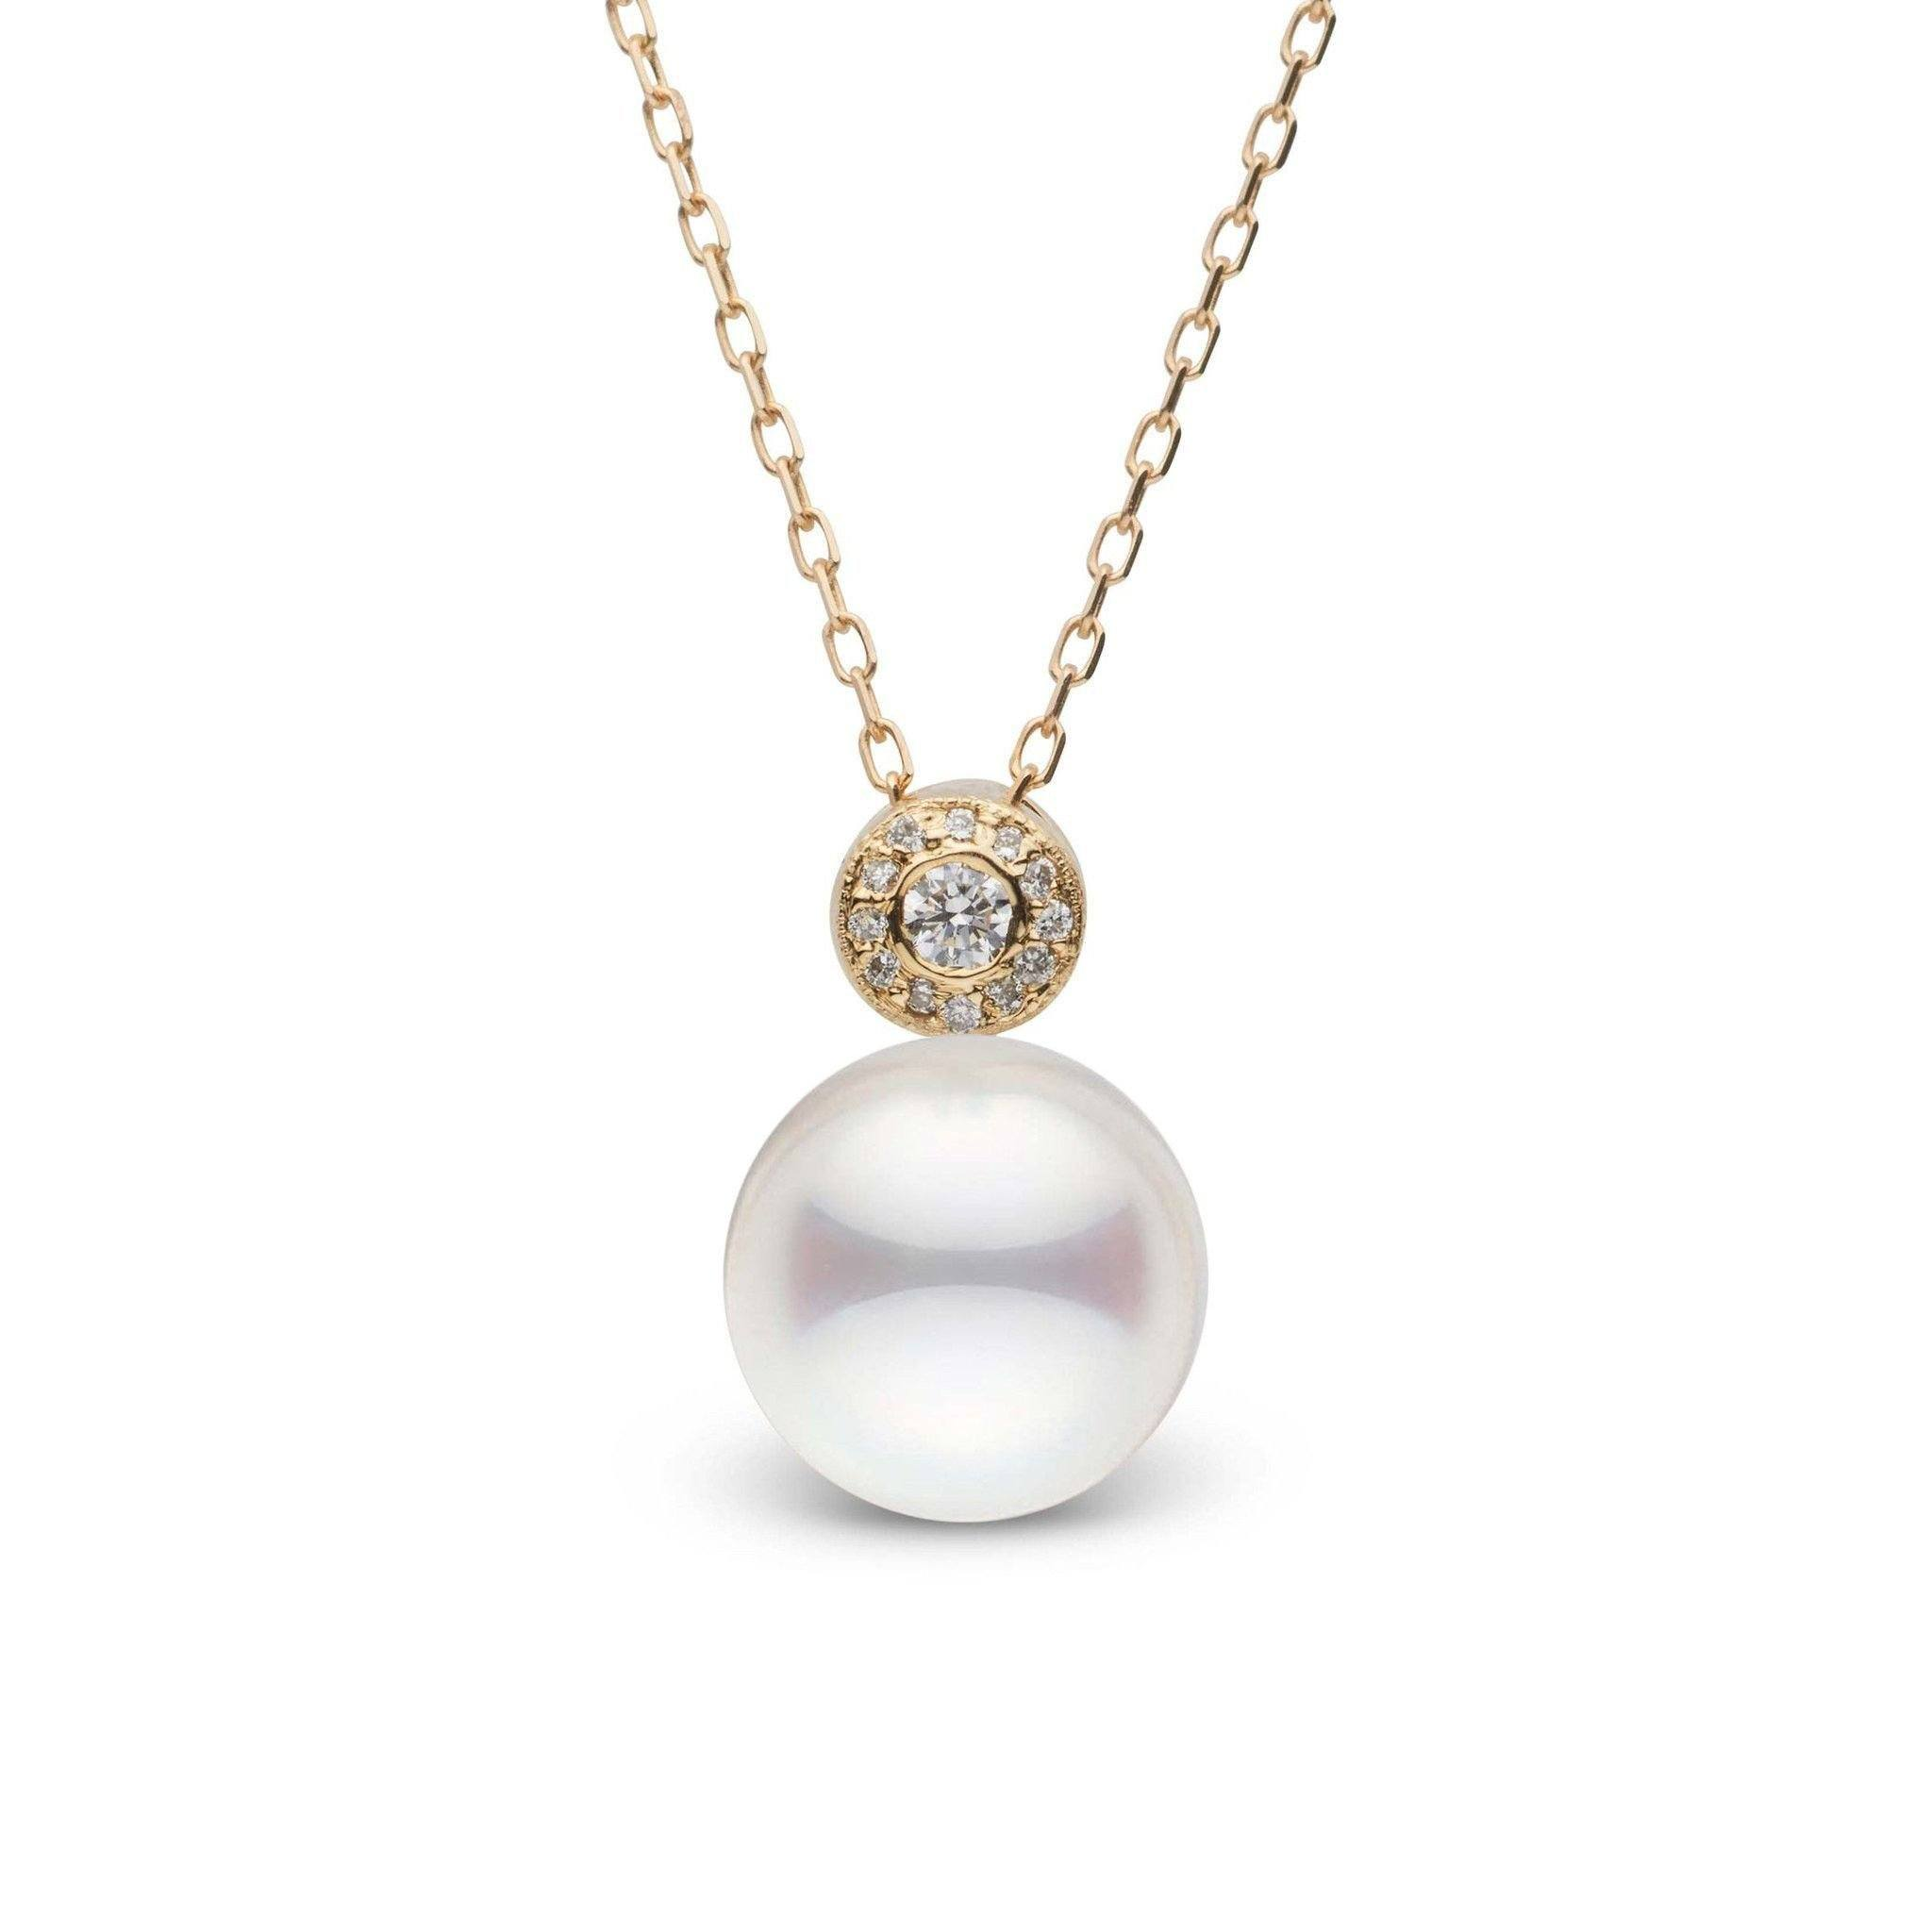 Aura Collection White 9.0-9.5 mm Akoya Pearl and Diamond Pendant